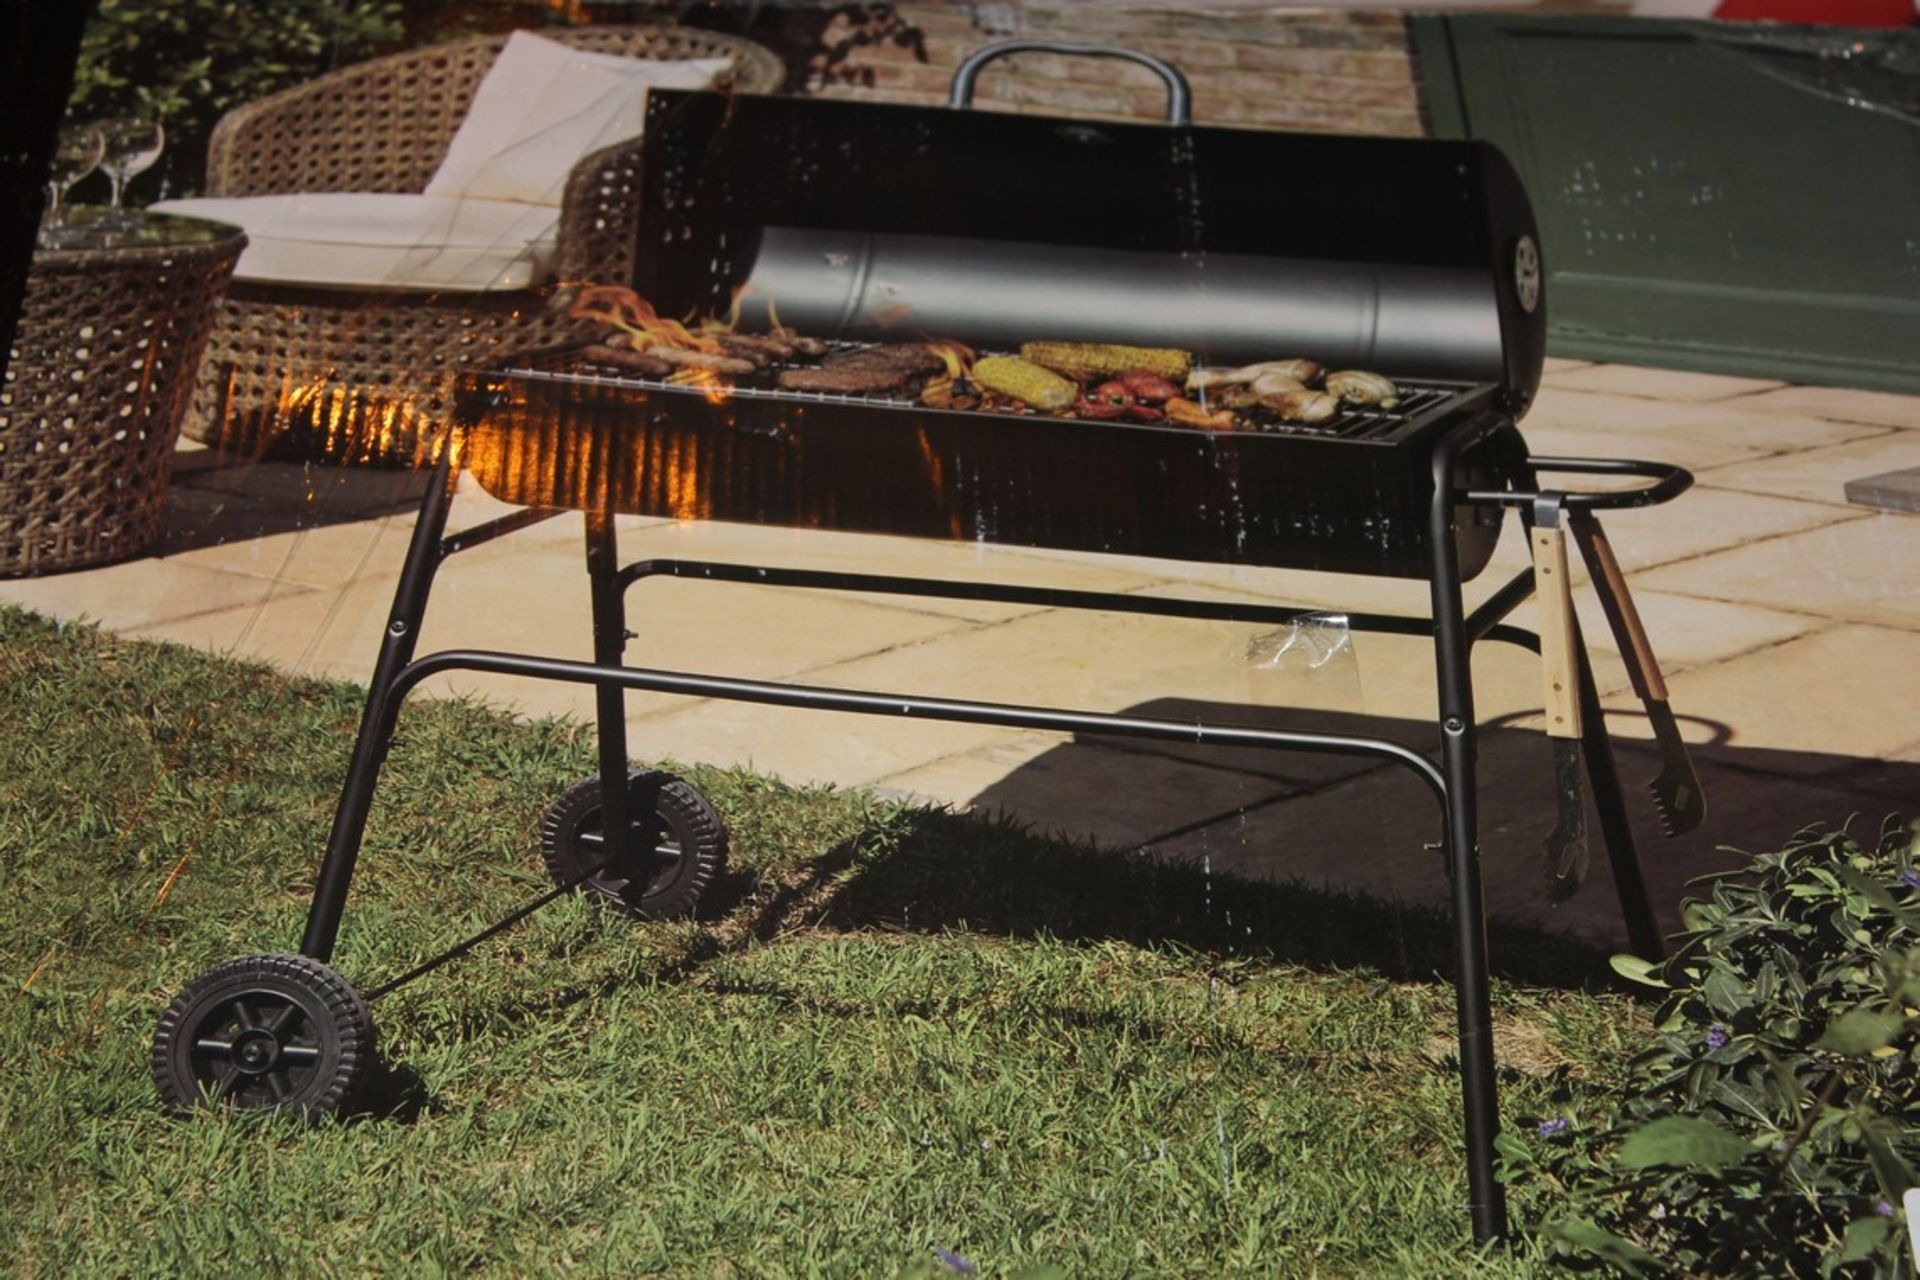 Lot 39 - Boxed Expert Grill 75cm Barrel Grill RRP £120 (Public Viewing and Appraisals Available)